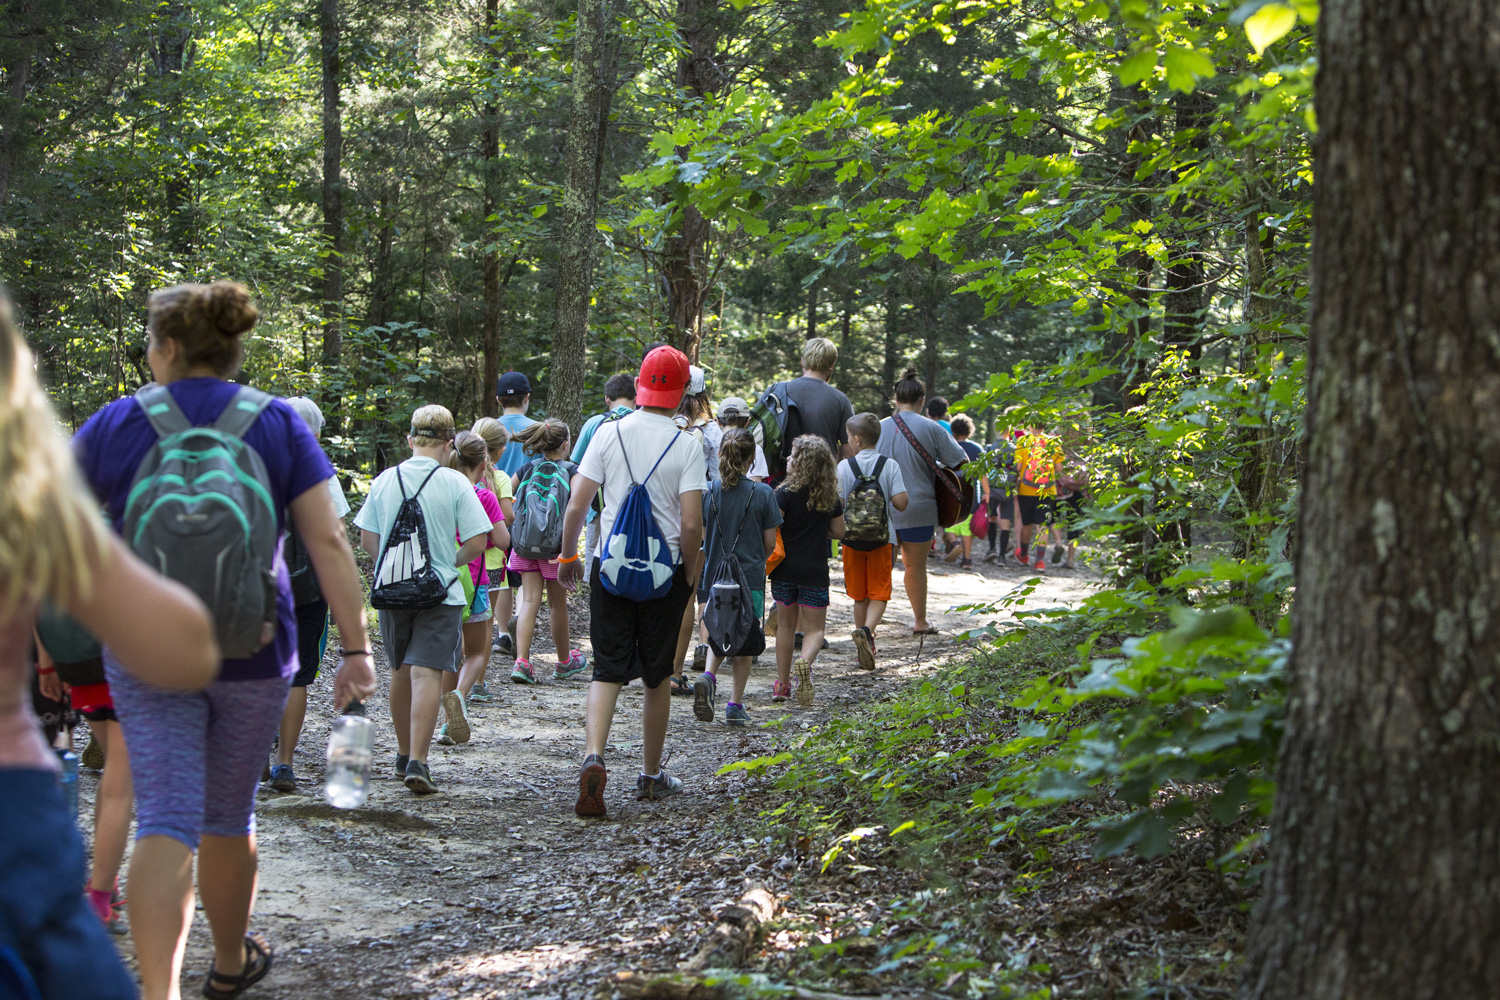 Hiking at camp can lead to an encounter with Jesus.